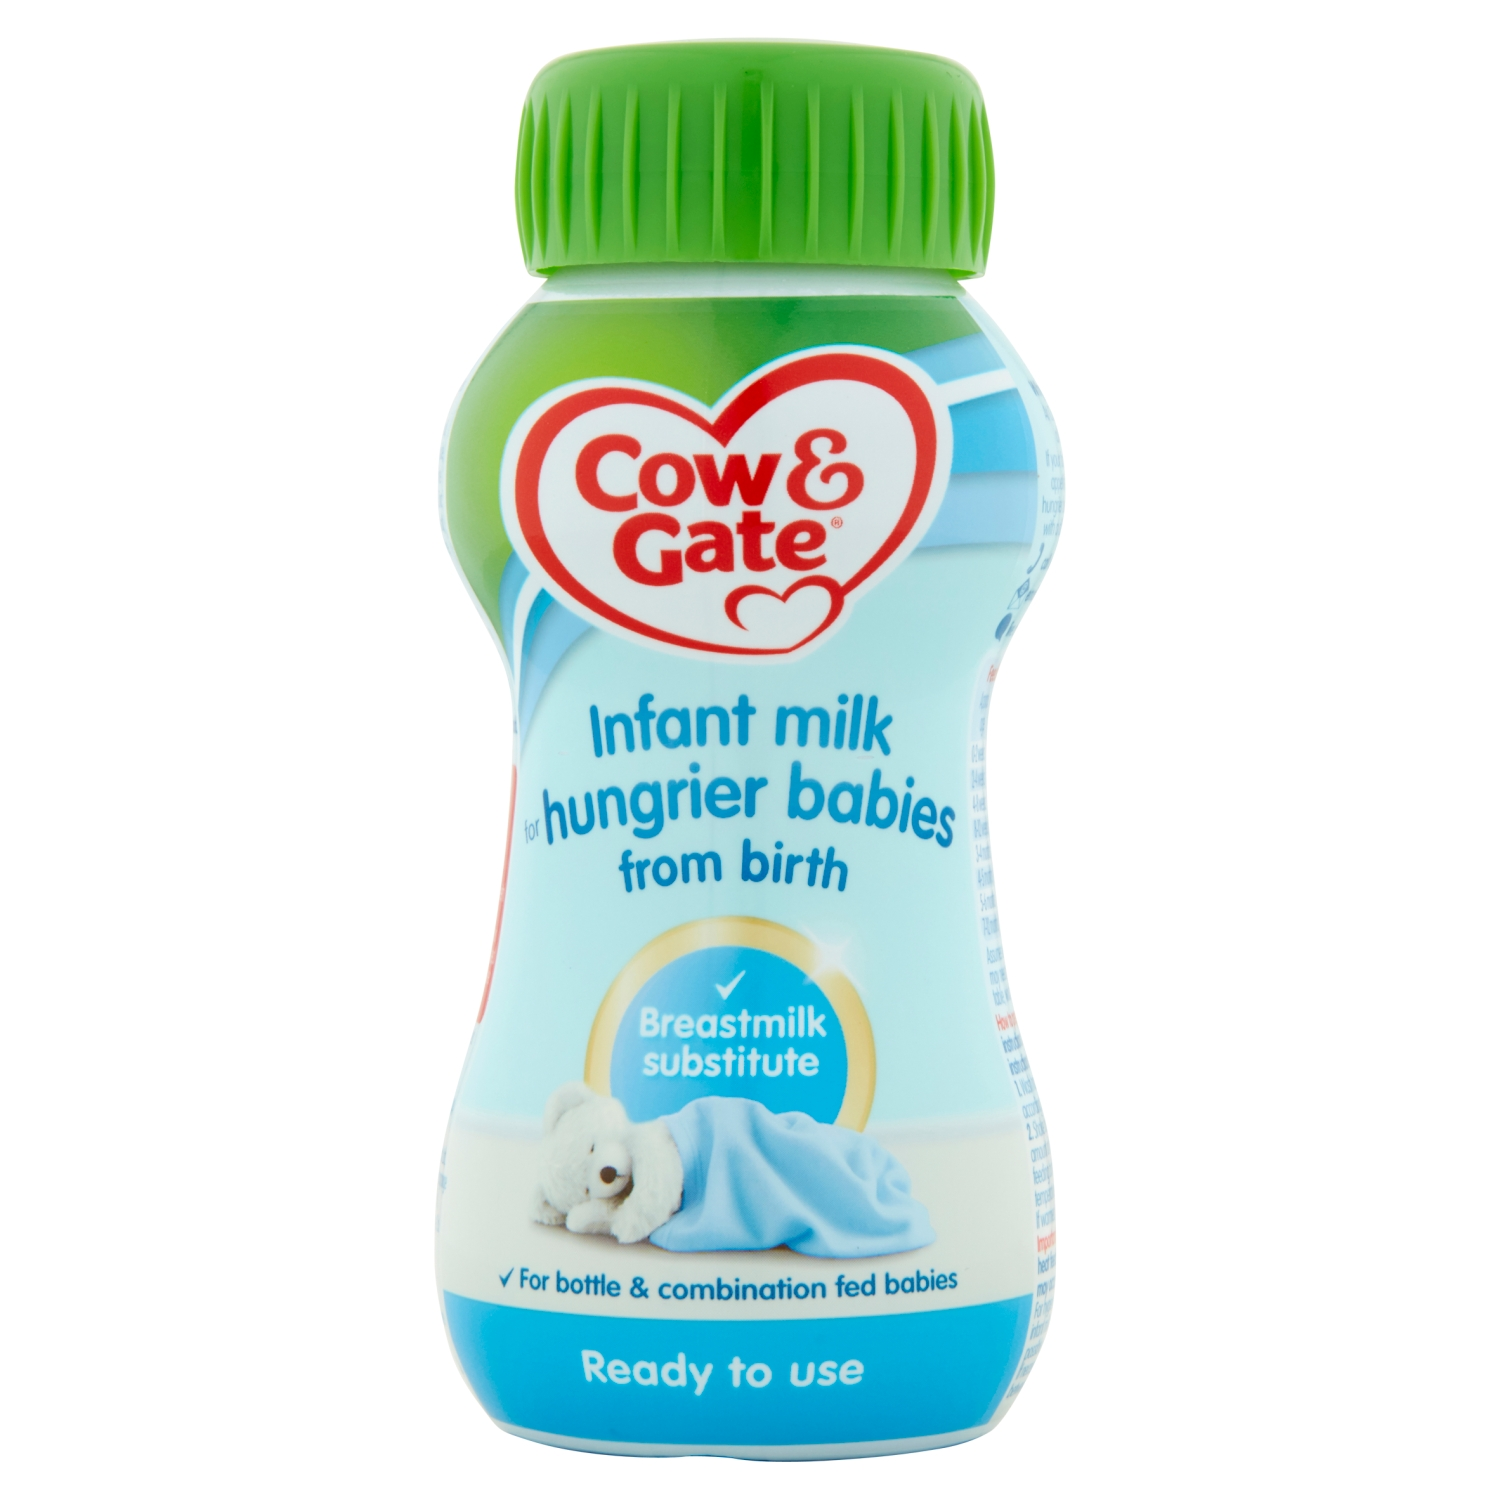 Cow & Gate Infant Milk for Hungrier Babies from Birth 200ml